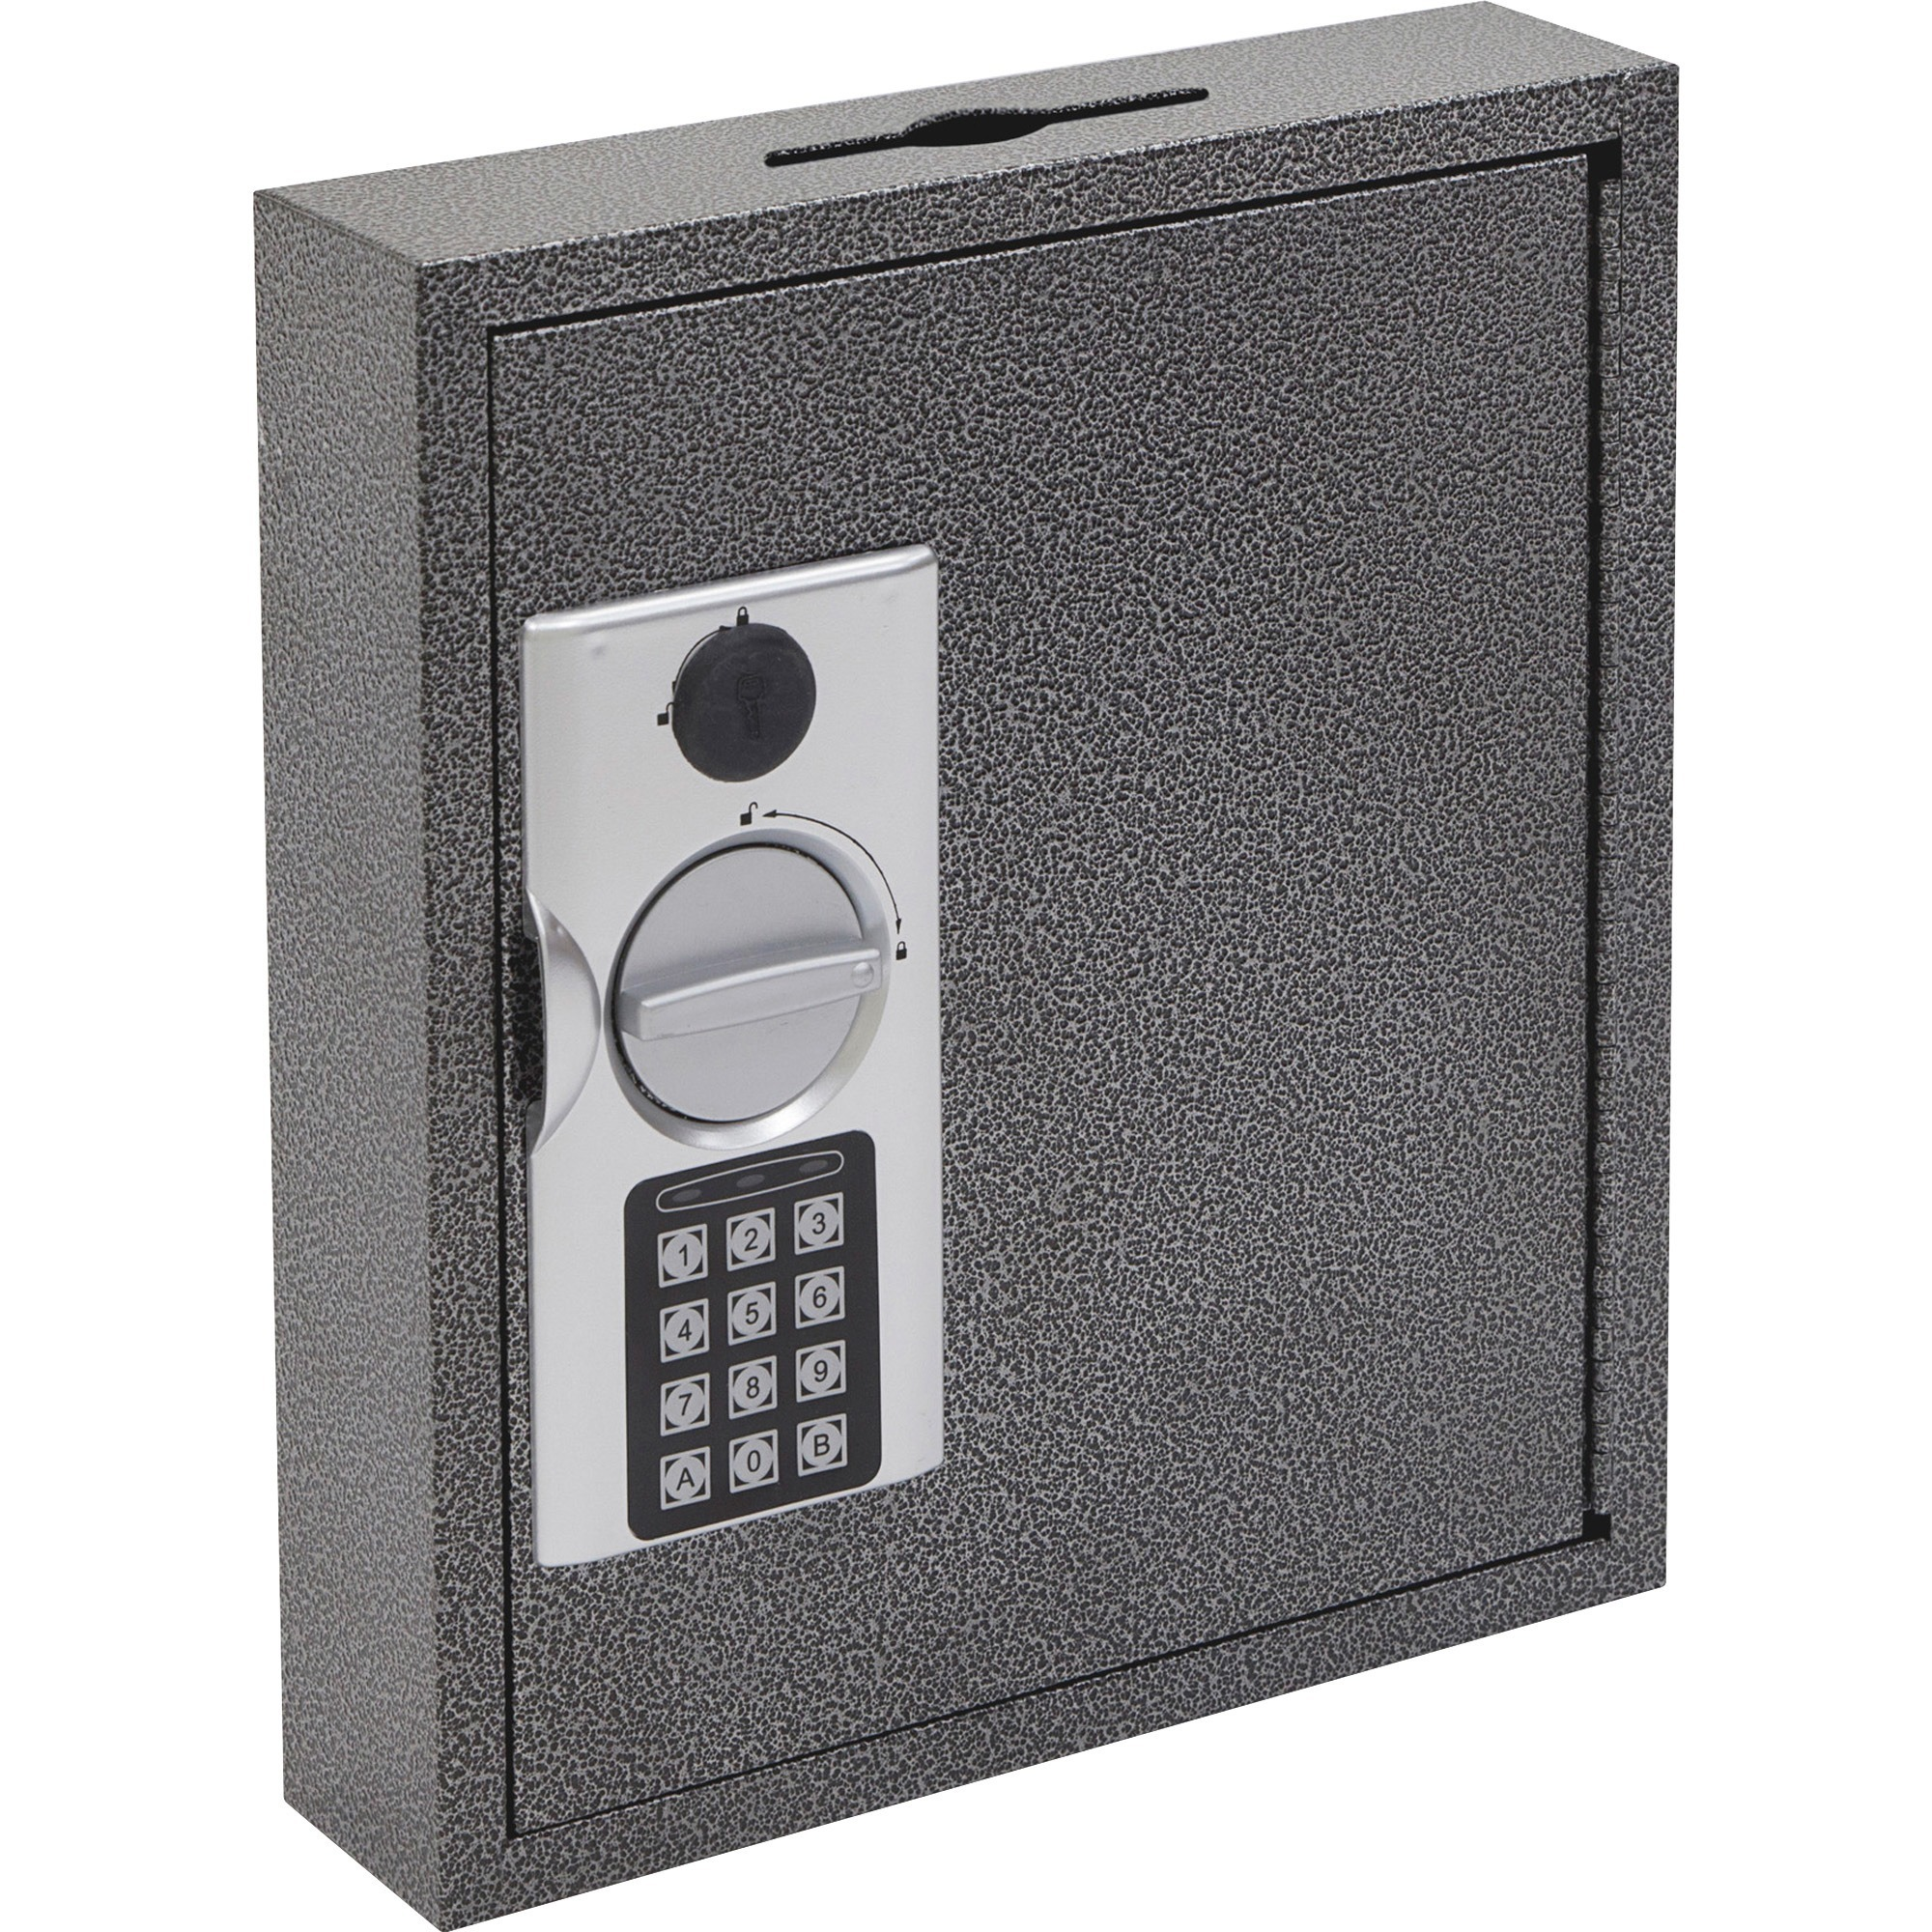 FireKing, FIRKE100230, E-lock Steel Key Cabinets, 1 Each, Black,Silver